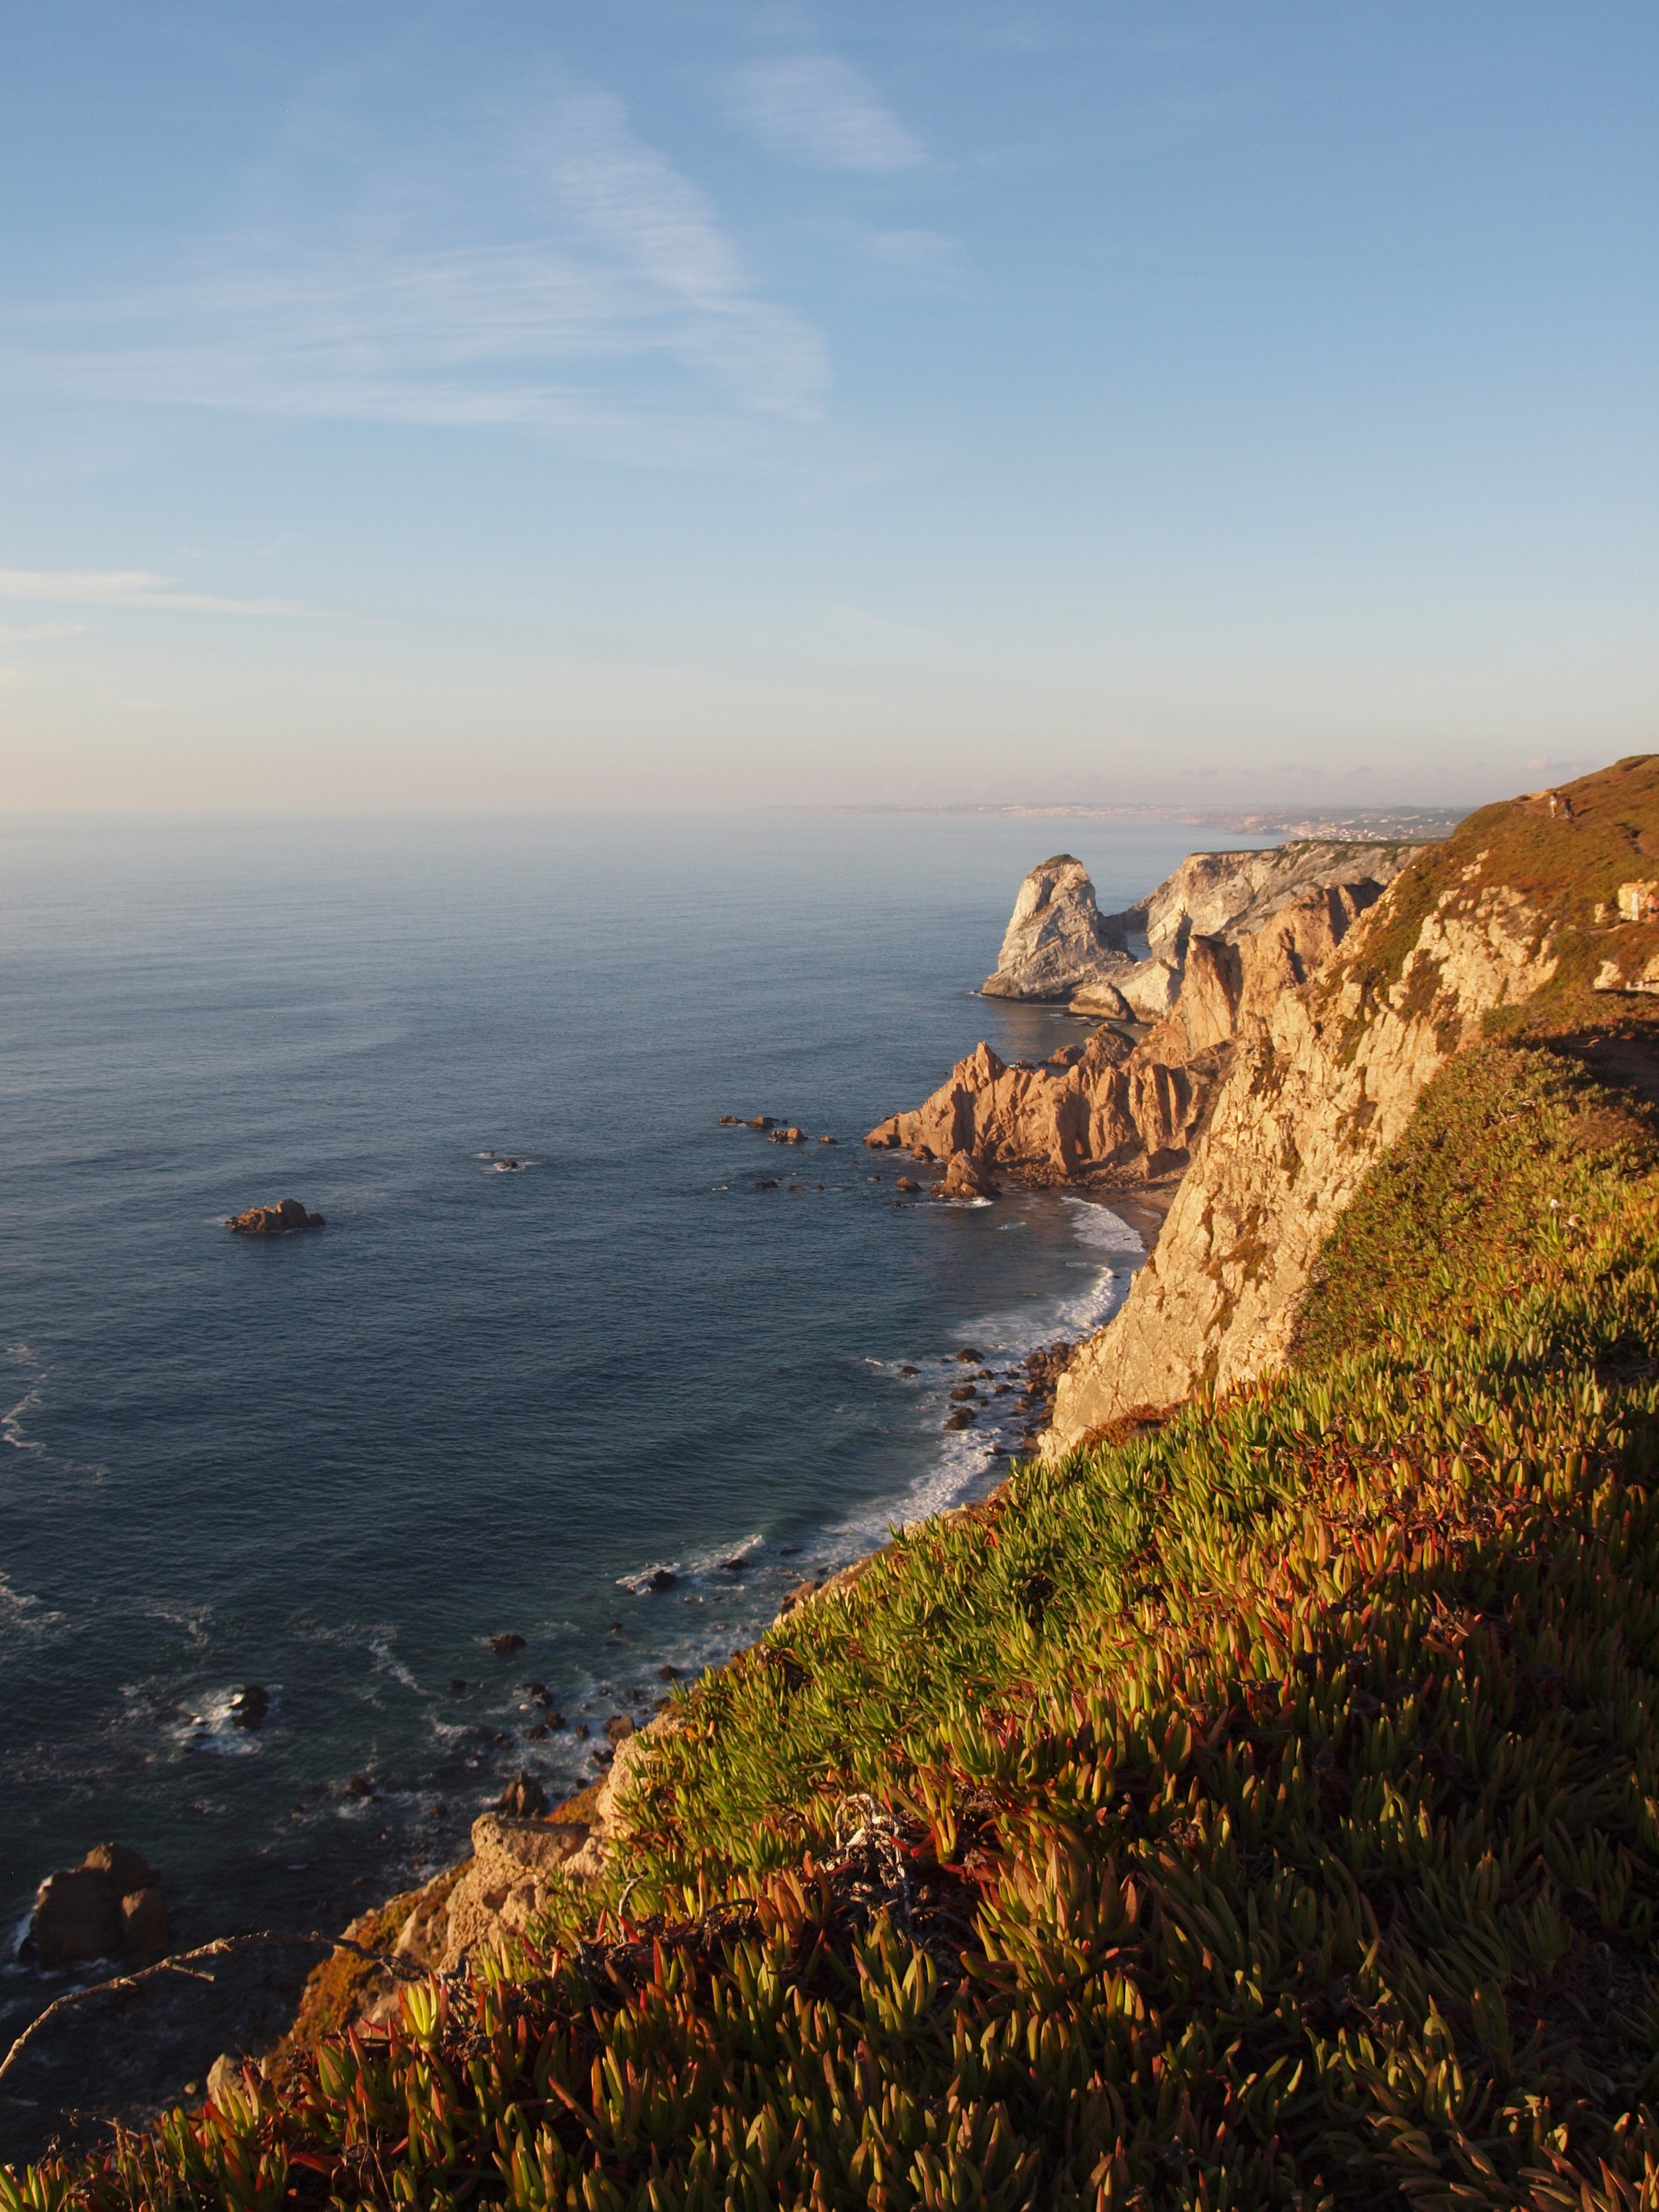 Cabo da Roca - the westernmost point of continental Europe in Portugal